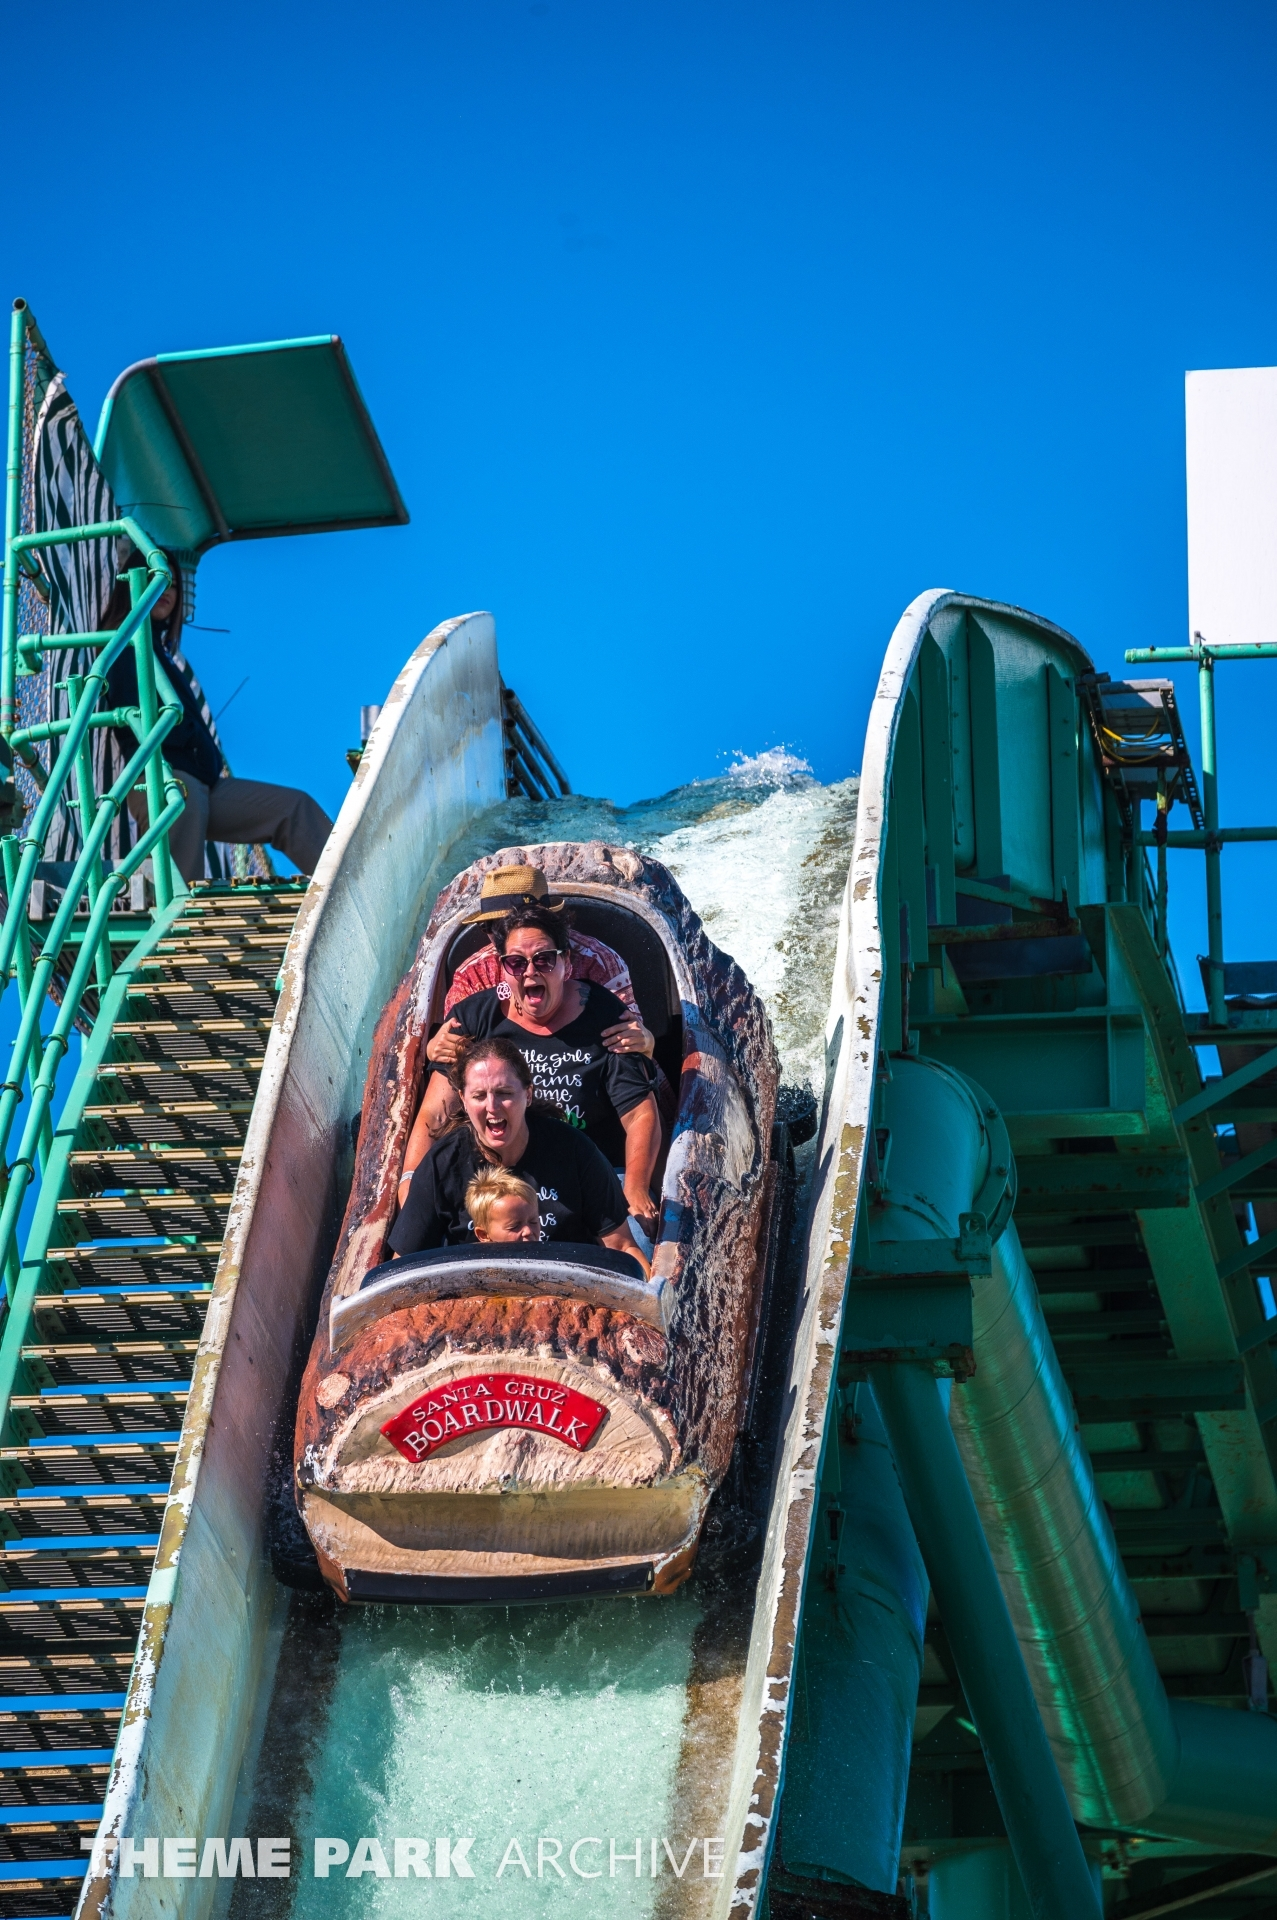 Logger's Revenge at Santa Cruz Beach Boardwalk